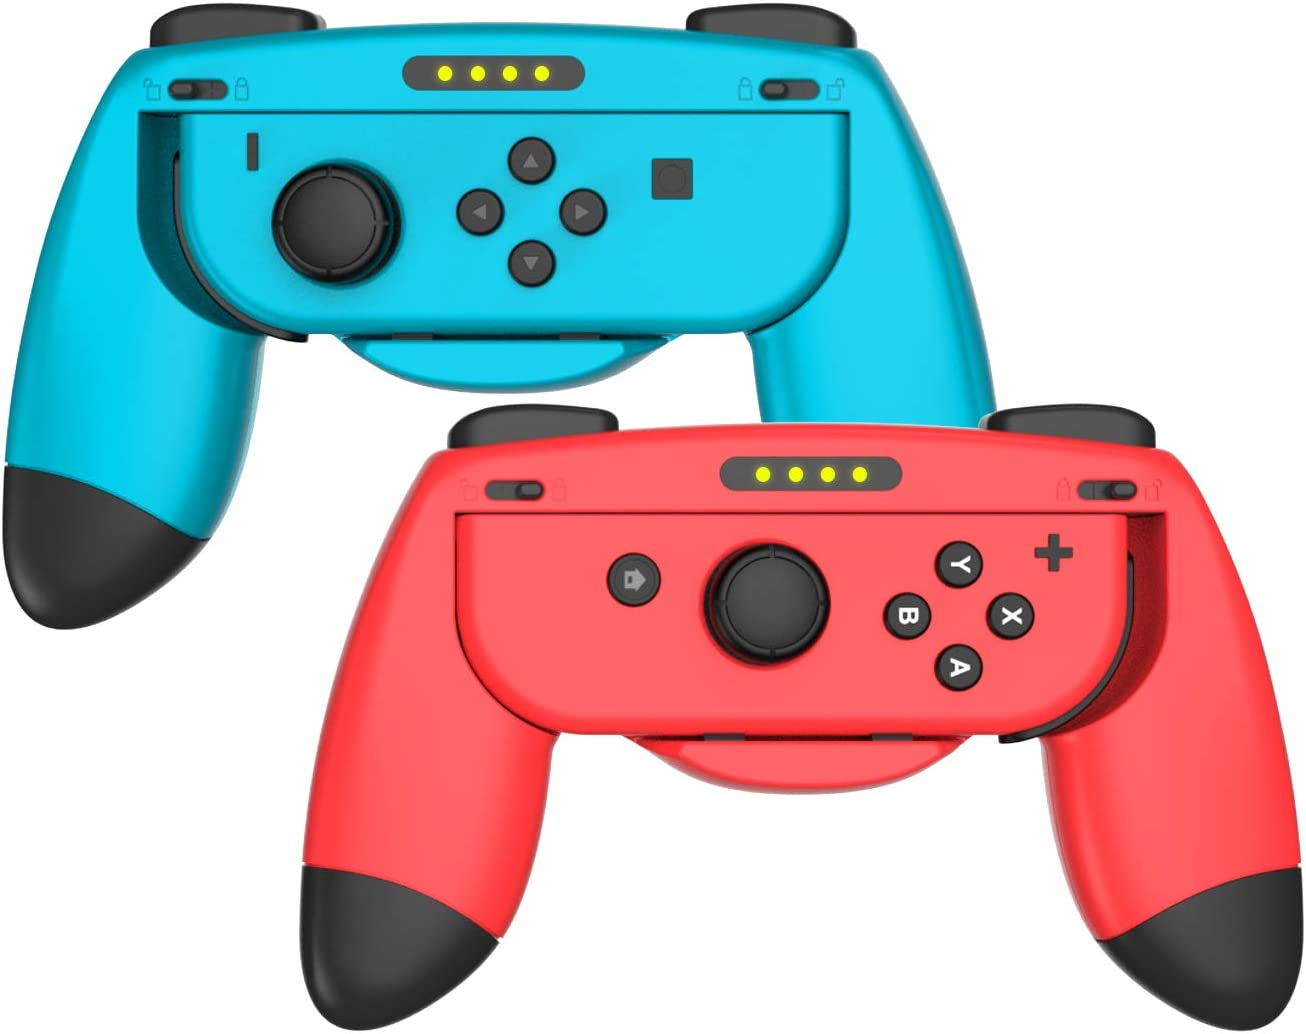 Switch Grip Kit JoyCon Hand Grips Controllers for JoyCon Wear-Resistant Handle Kit Compatible with JoyCon Controllers Comfort Handle for Kids Family Fun Special for Mario Kart 8 Deluxe(Red & Bule)